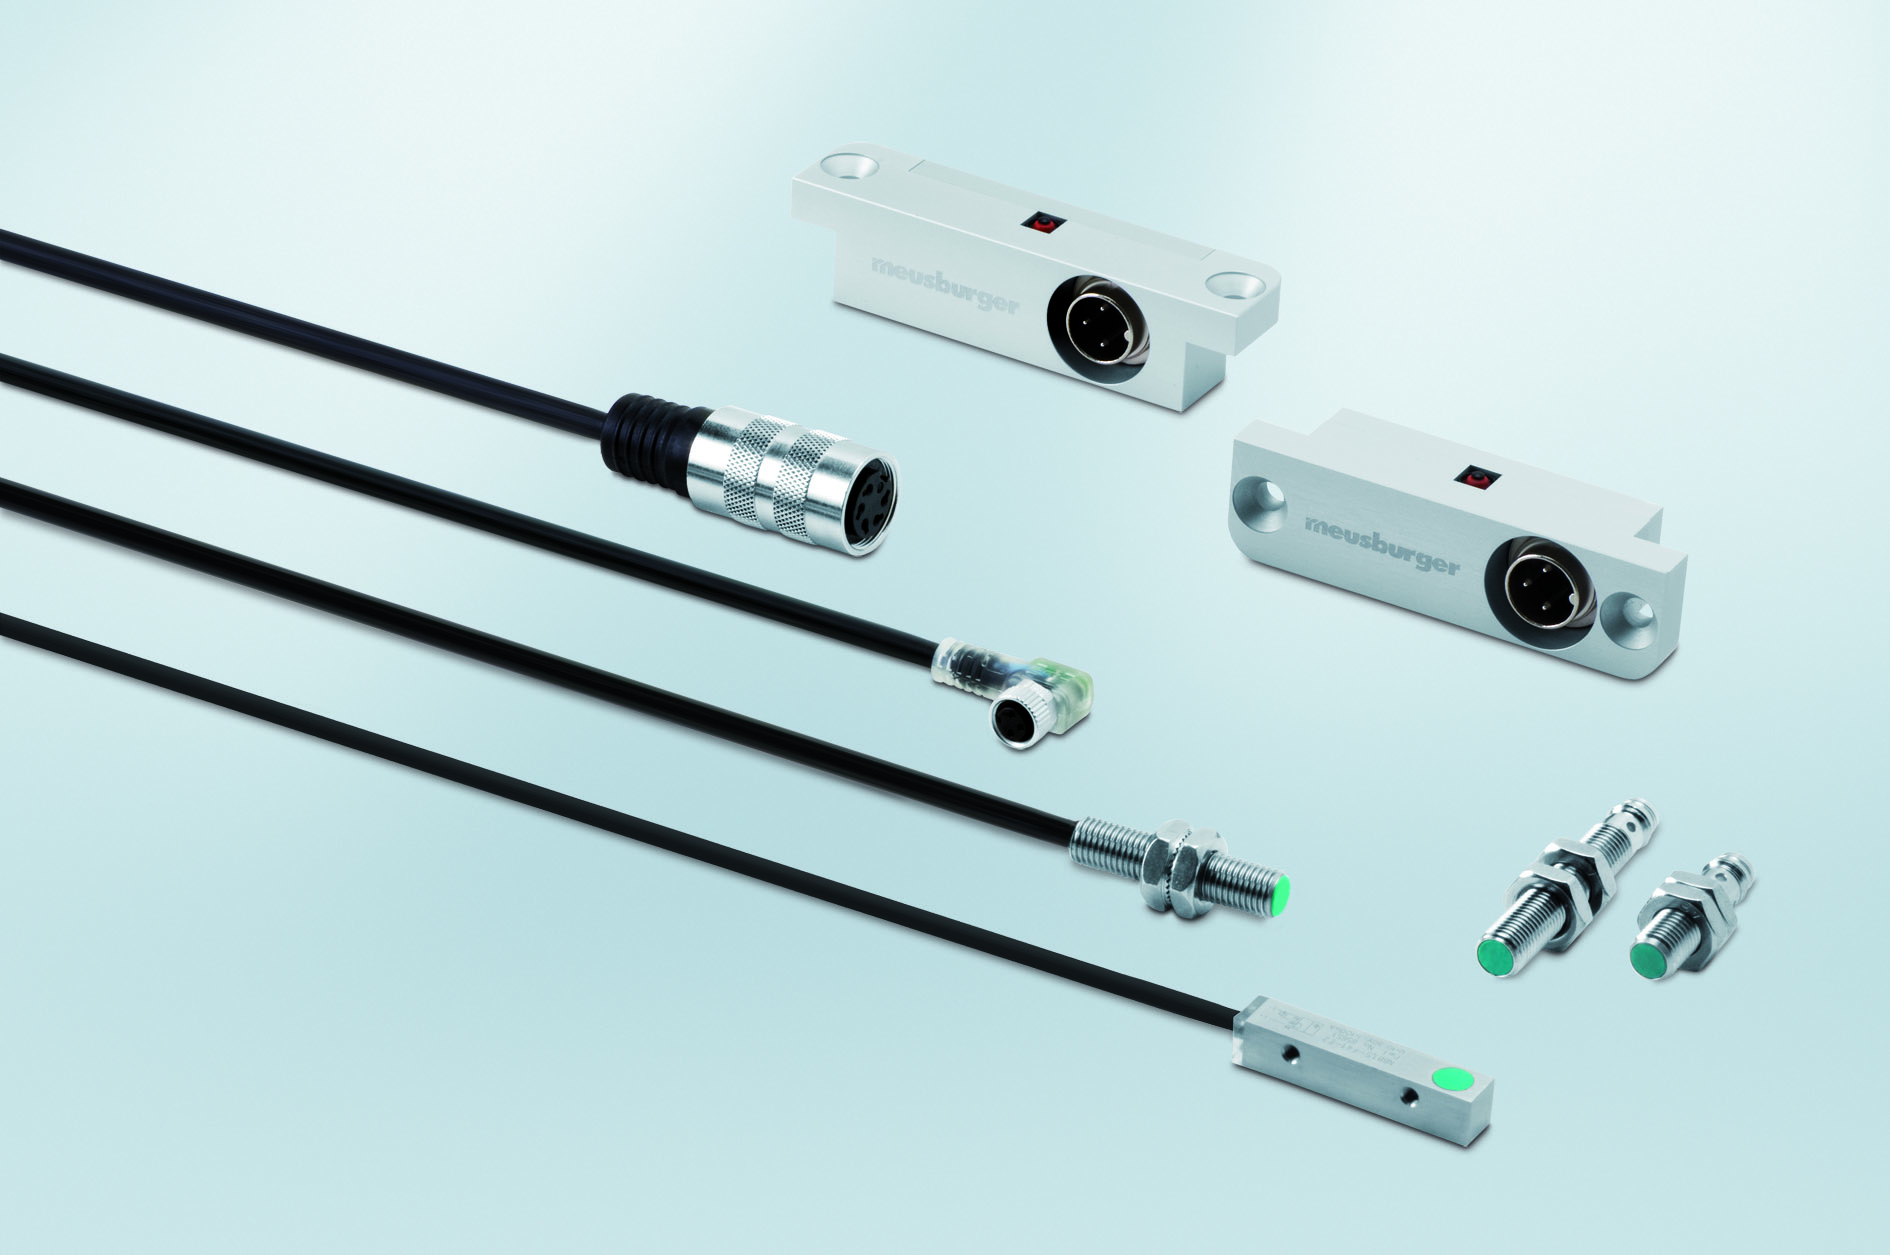 New at Meusburger - Limit switches and accessories